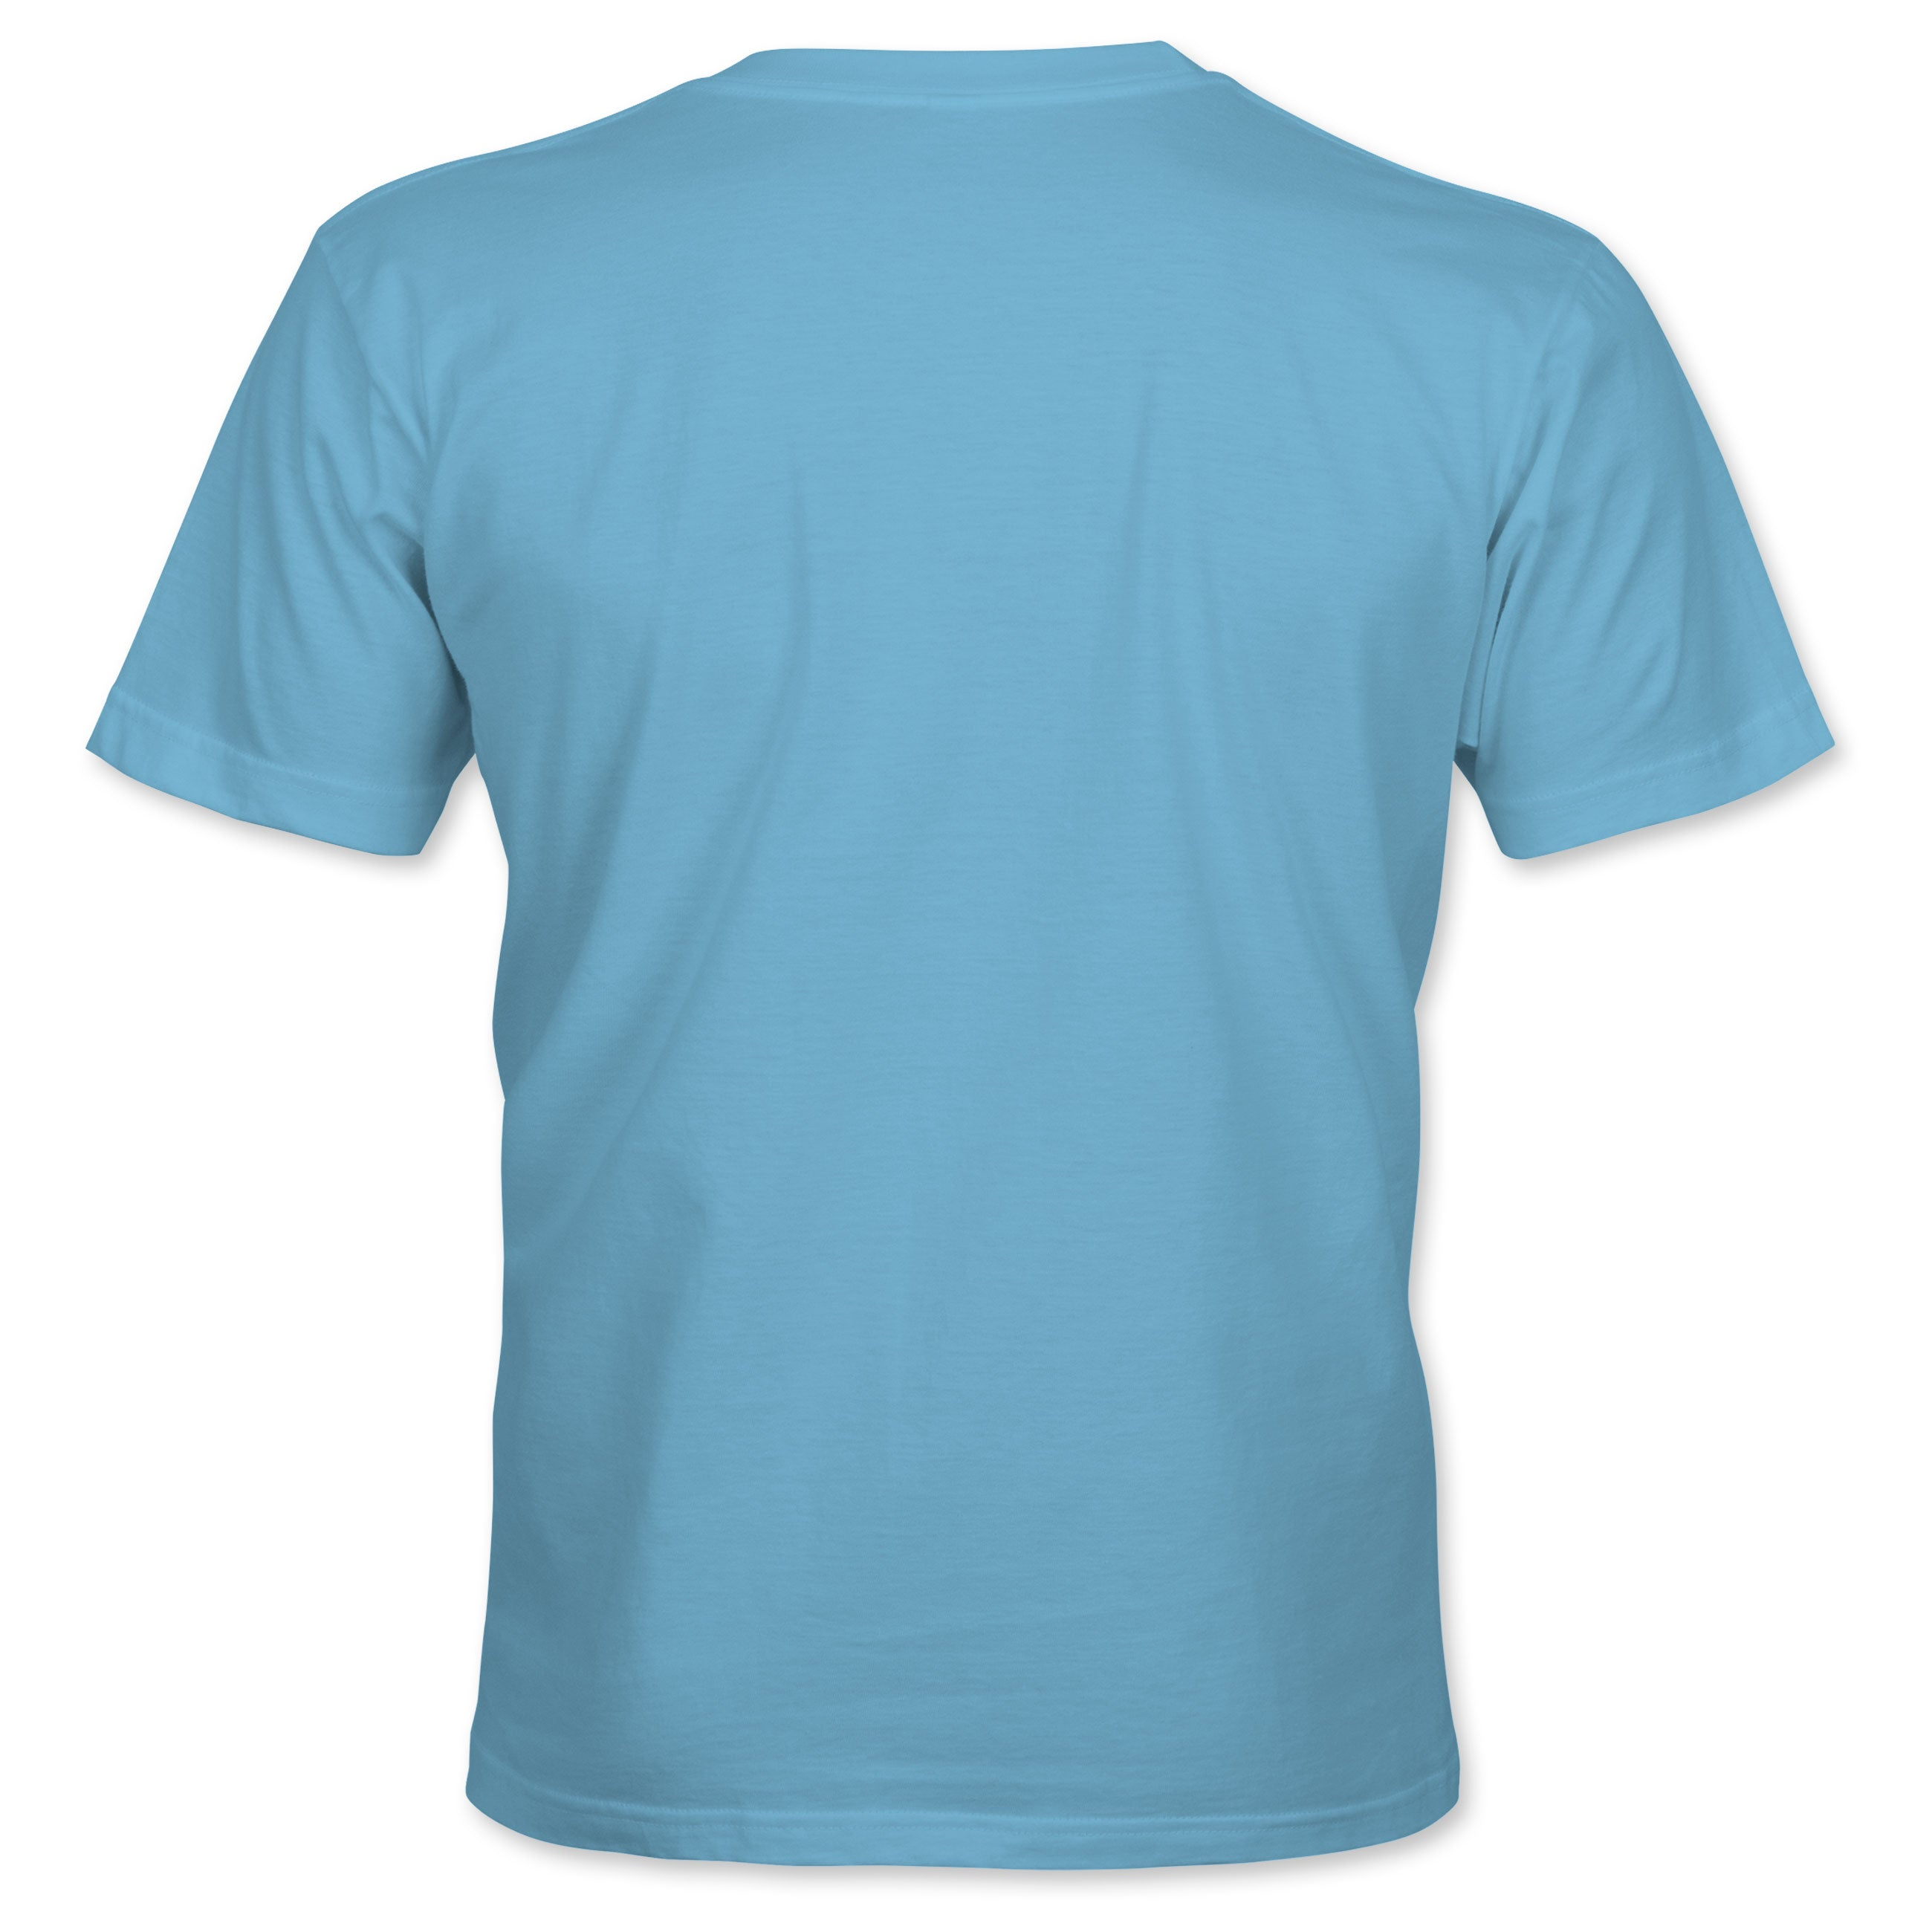 ILLA Beaches T-shirt -  Blue